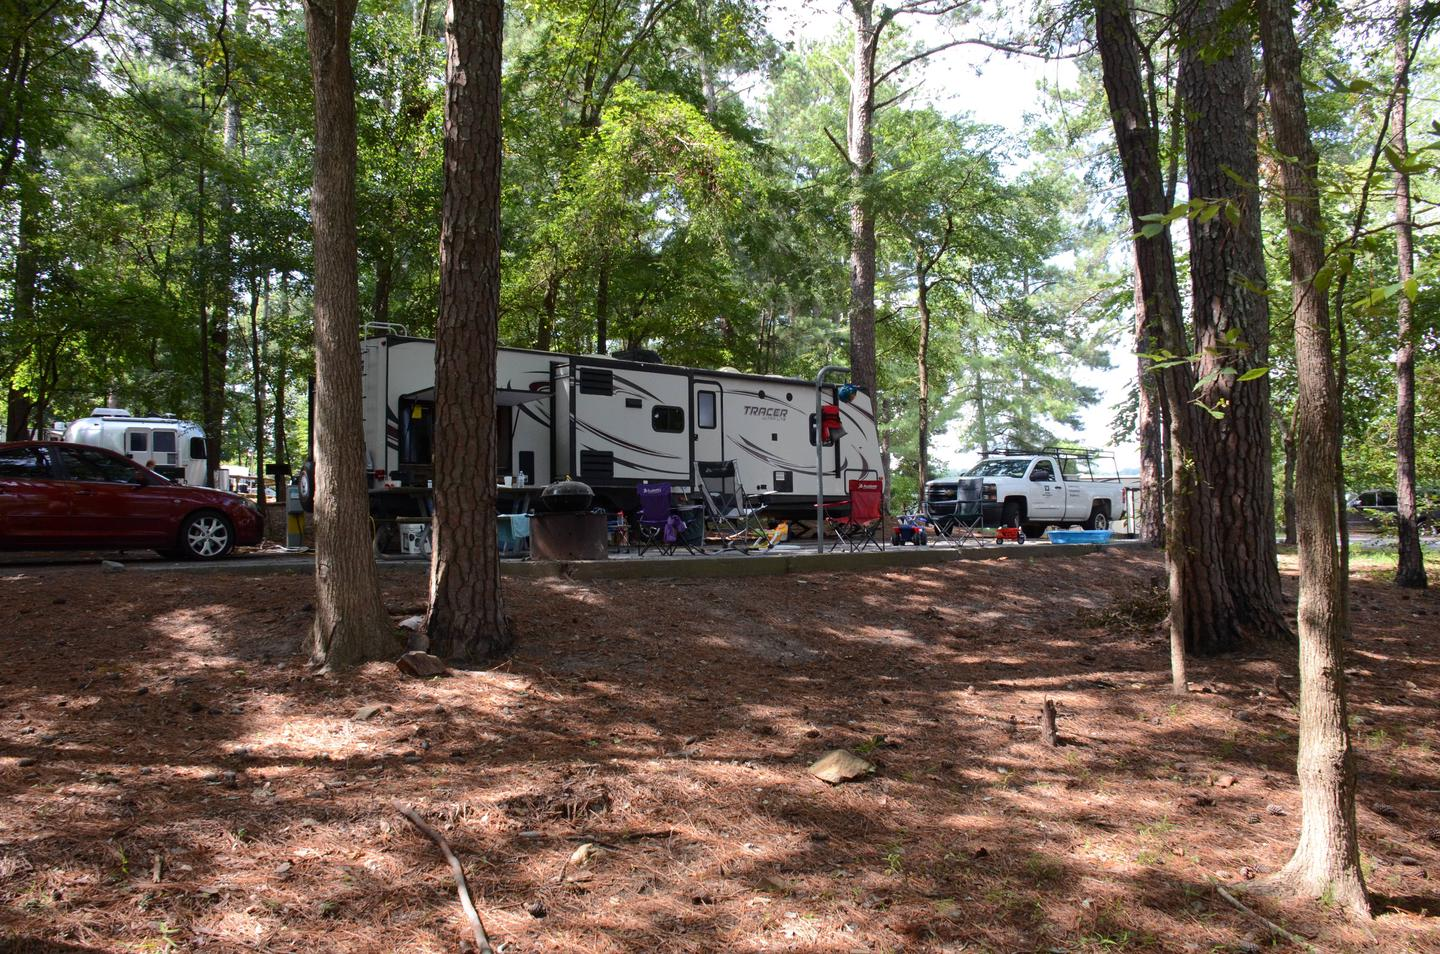 Campsite view, awning-side clearanceMcKinney Campground, campsite 31.